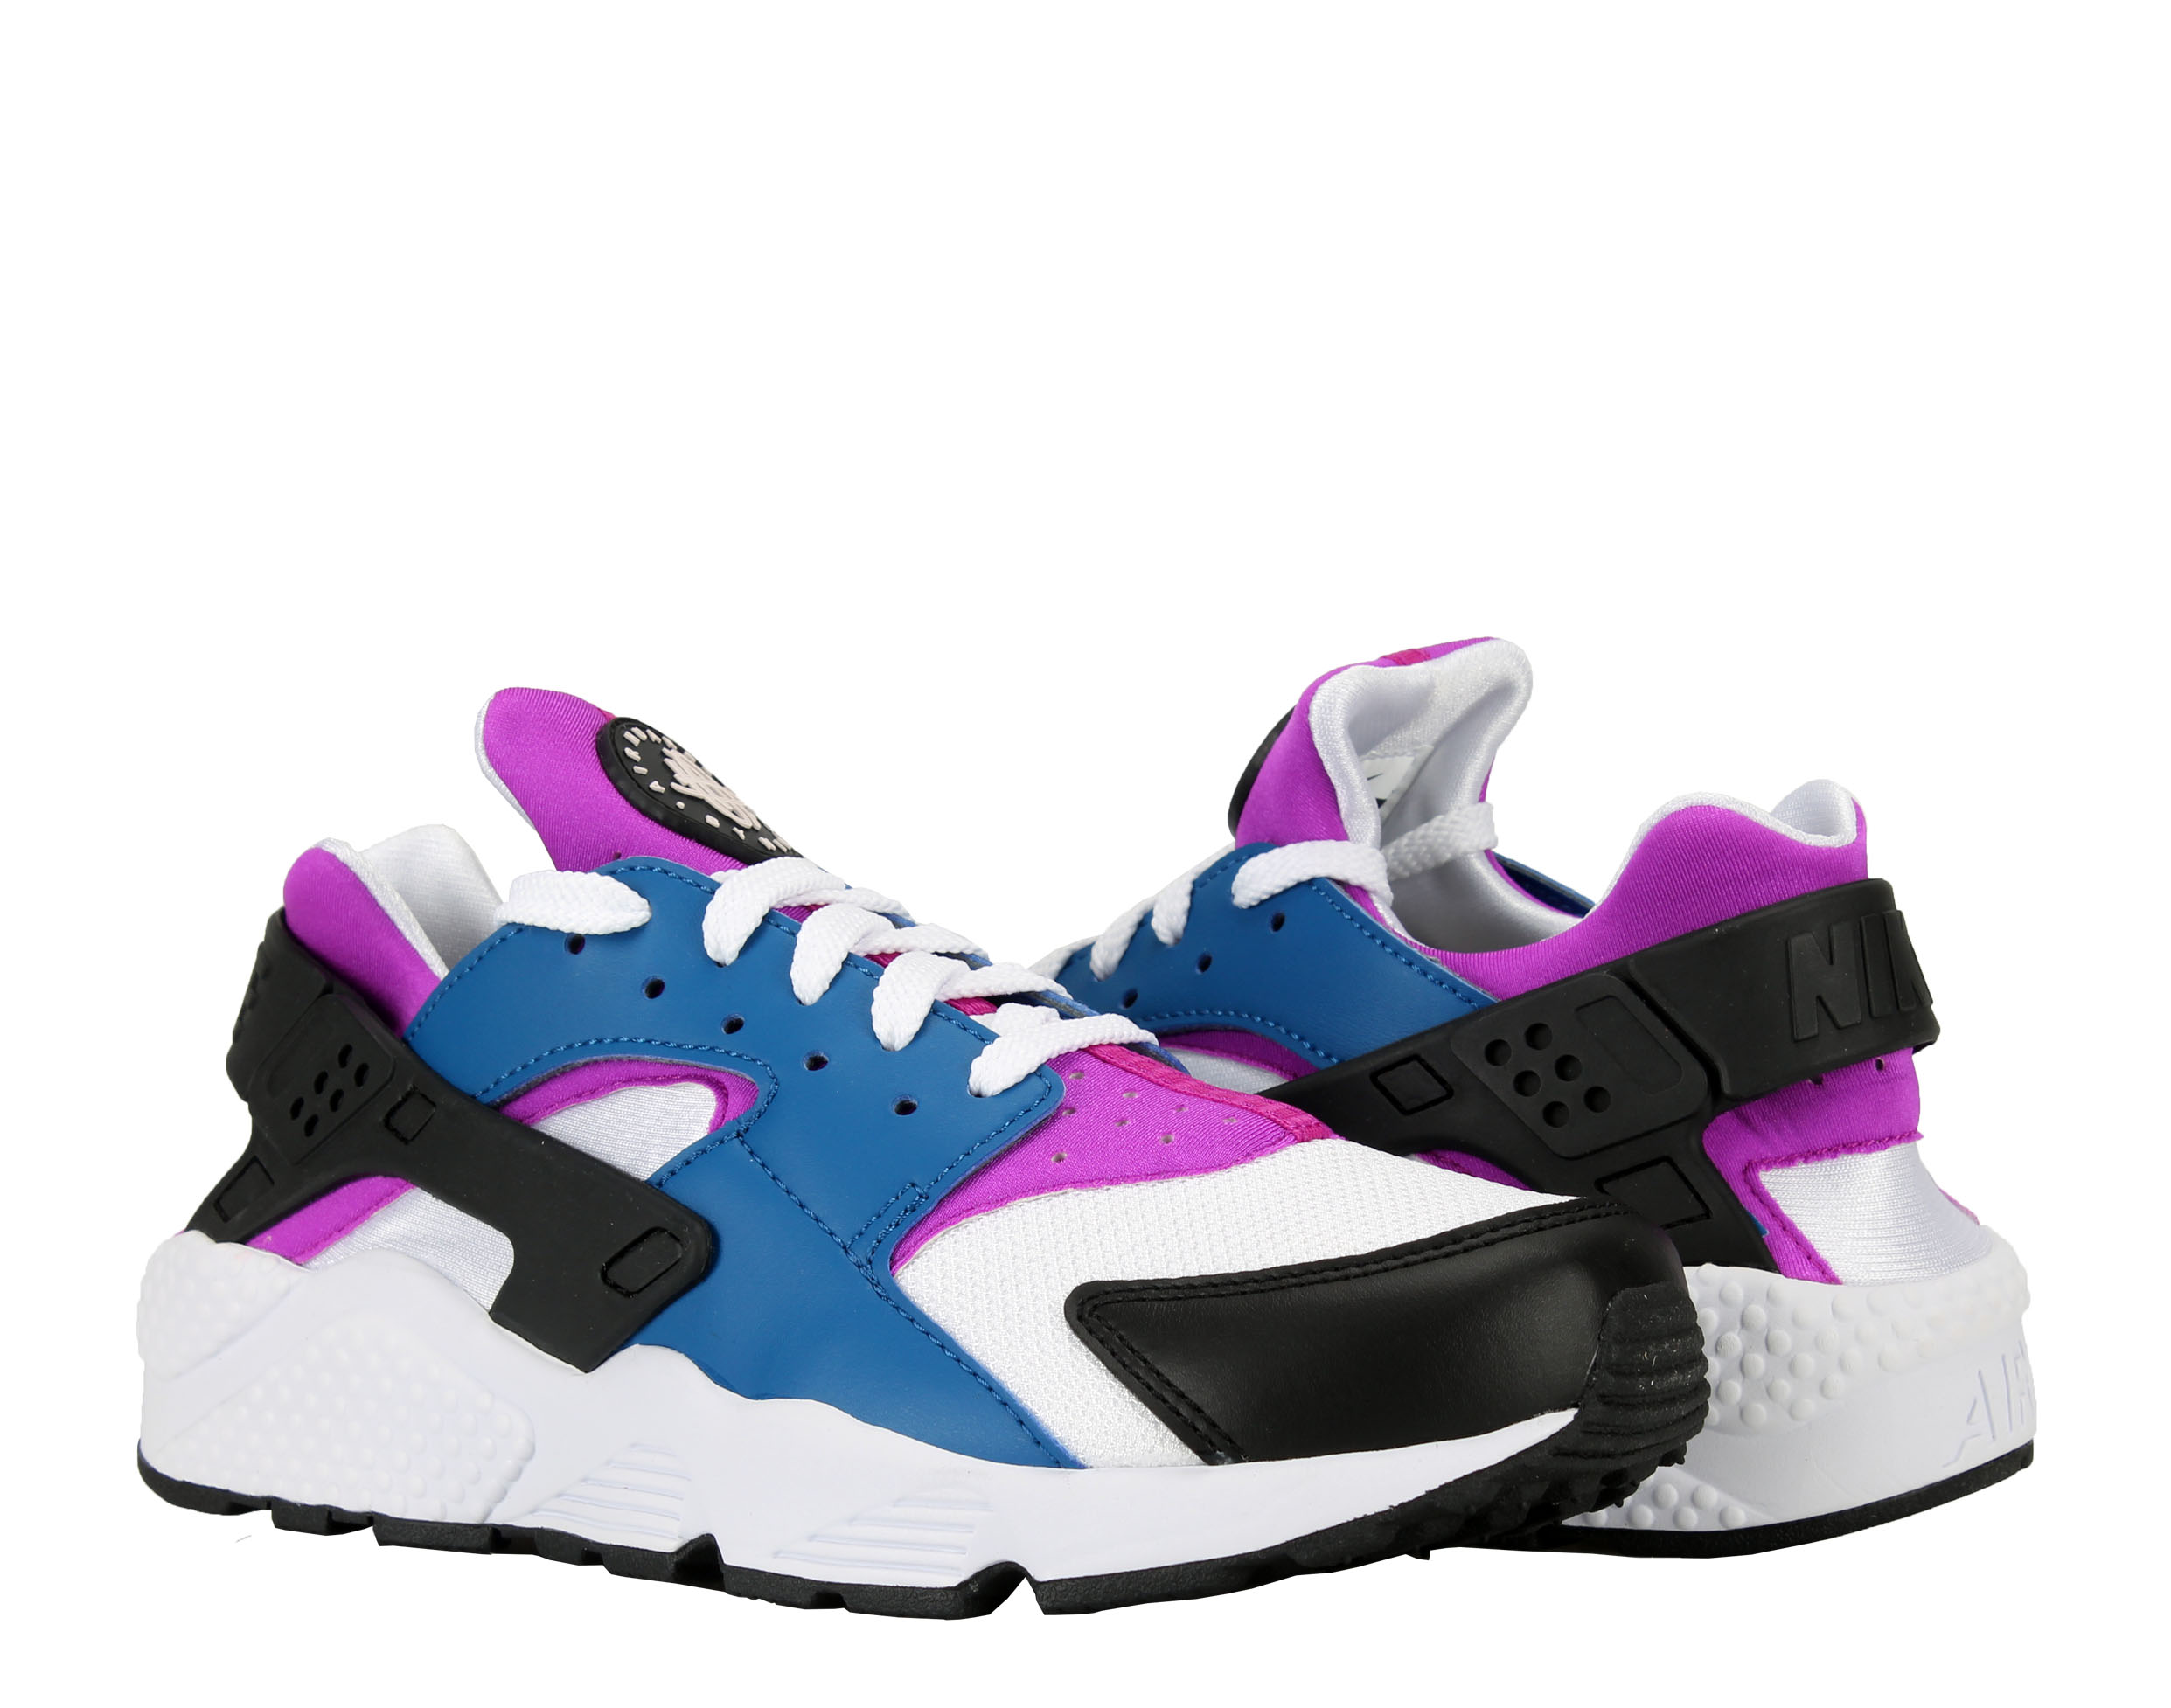 Nike Air Huarache Blue Jay White-Hyper Violet Men's Running Shoes 318429-415 by Nike